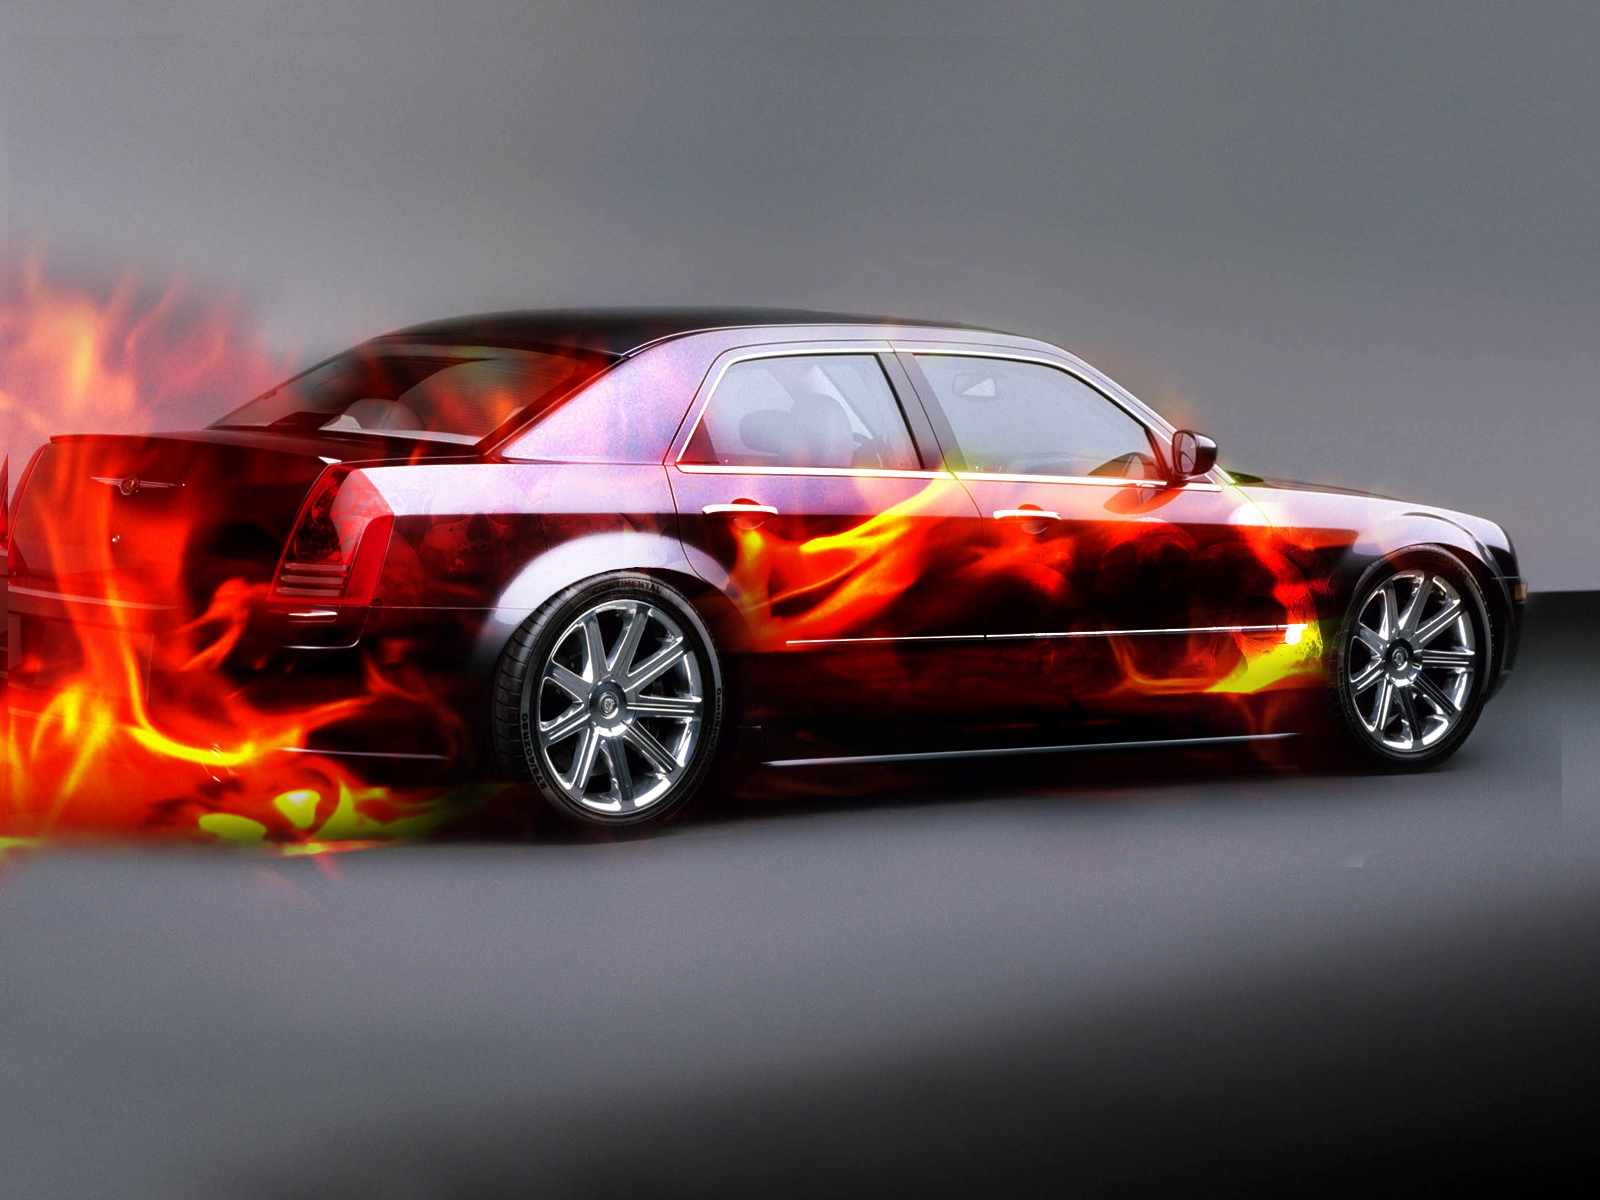 Hot Car Wallpaper Wallpapers For PC 1600x1200